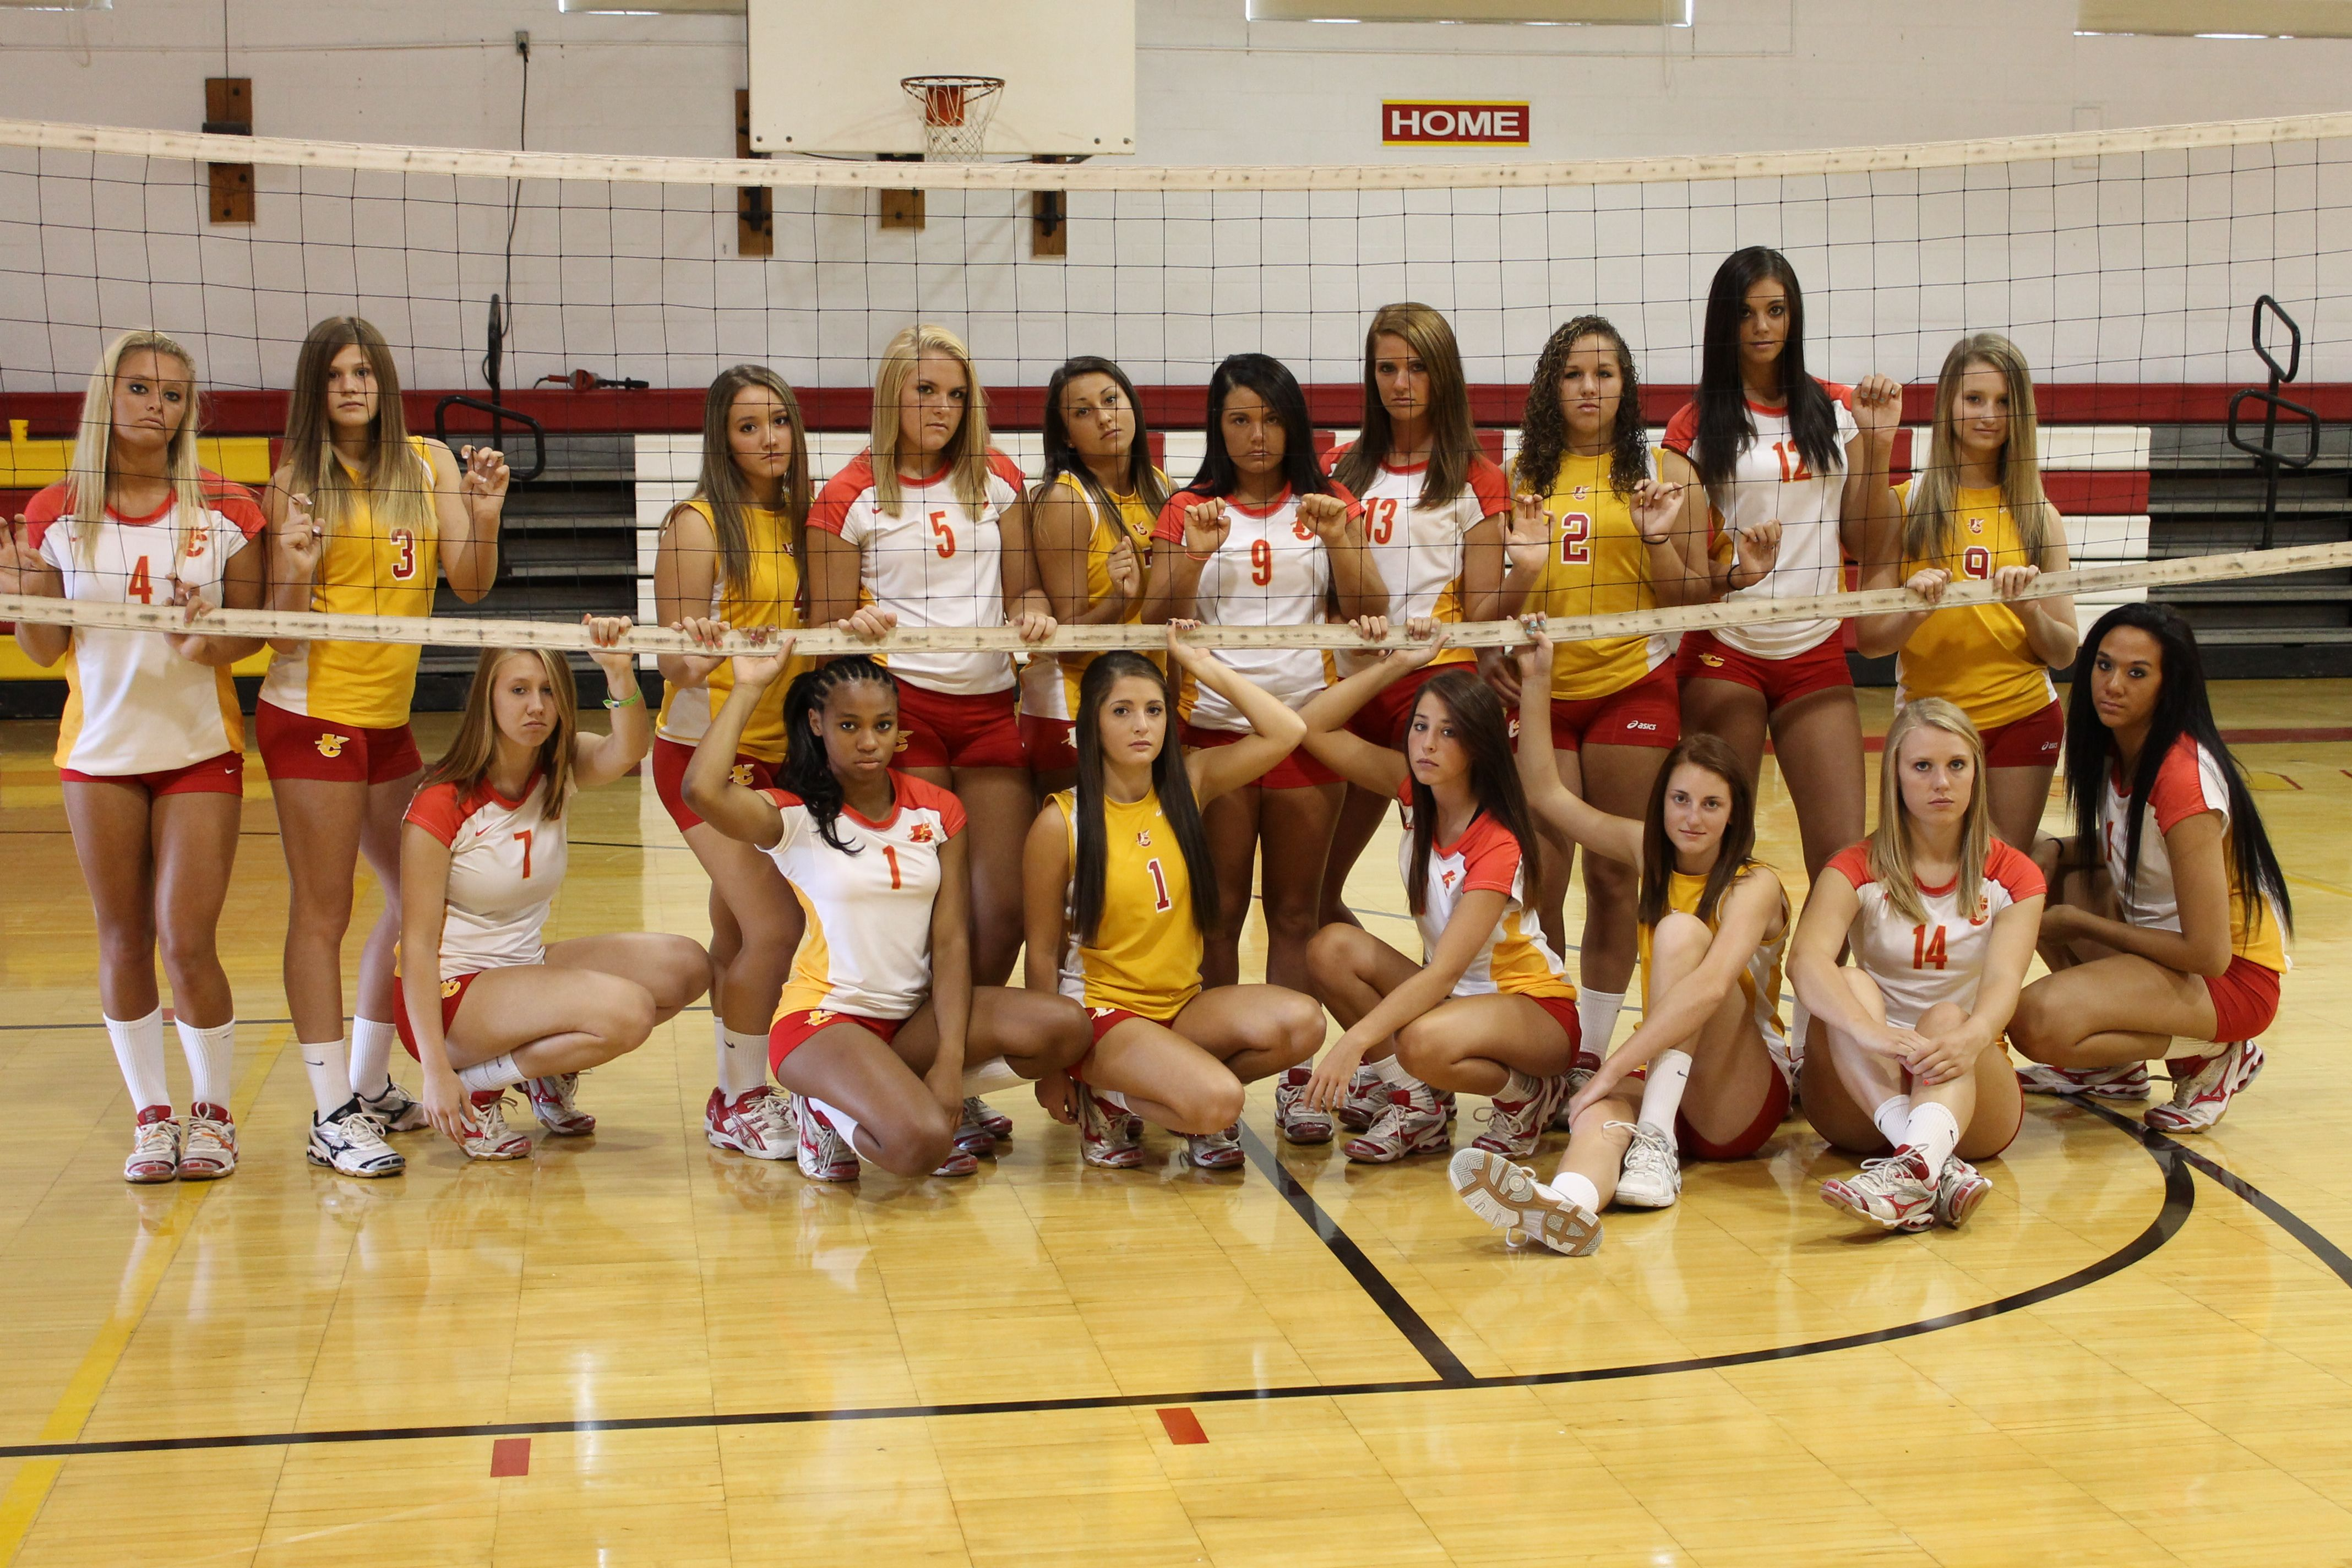 Volleyball Team Picture Volleyball Pictures Volleyball Team Pictures Team Pictures